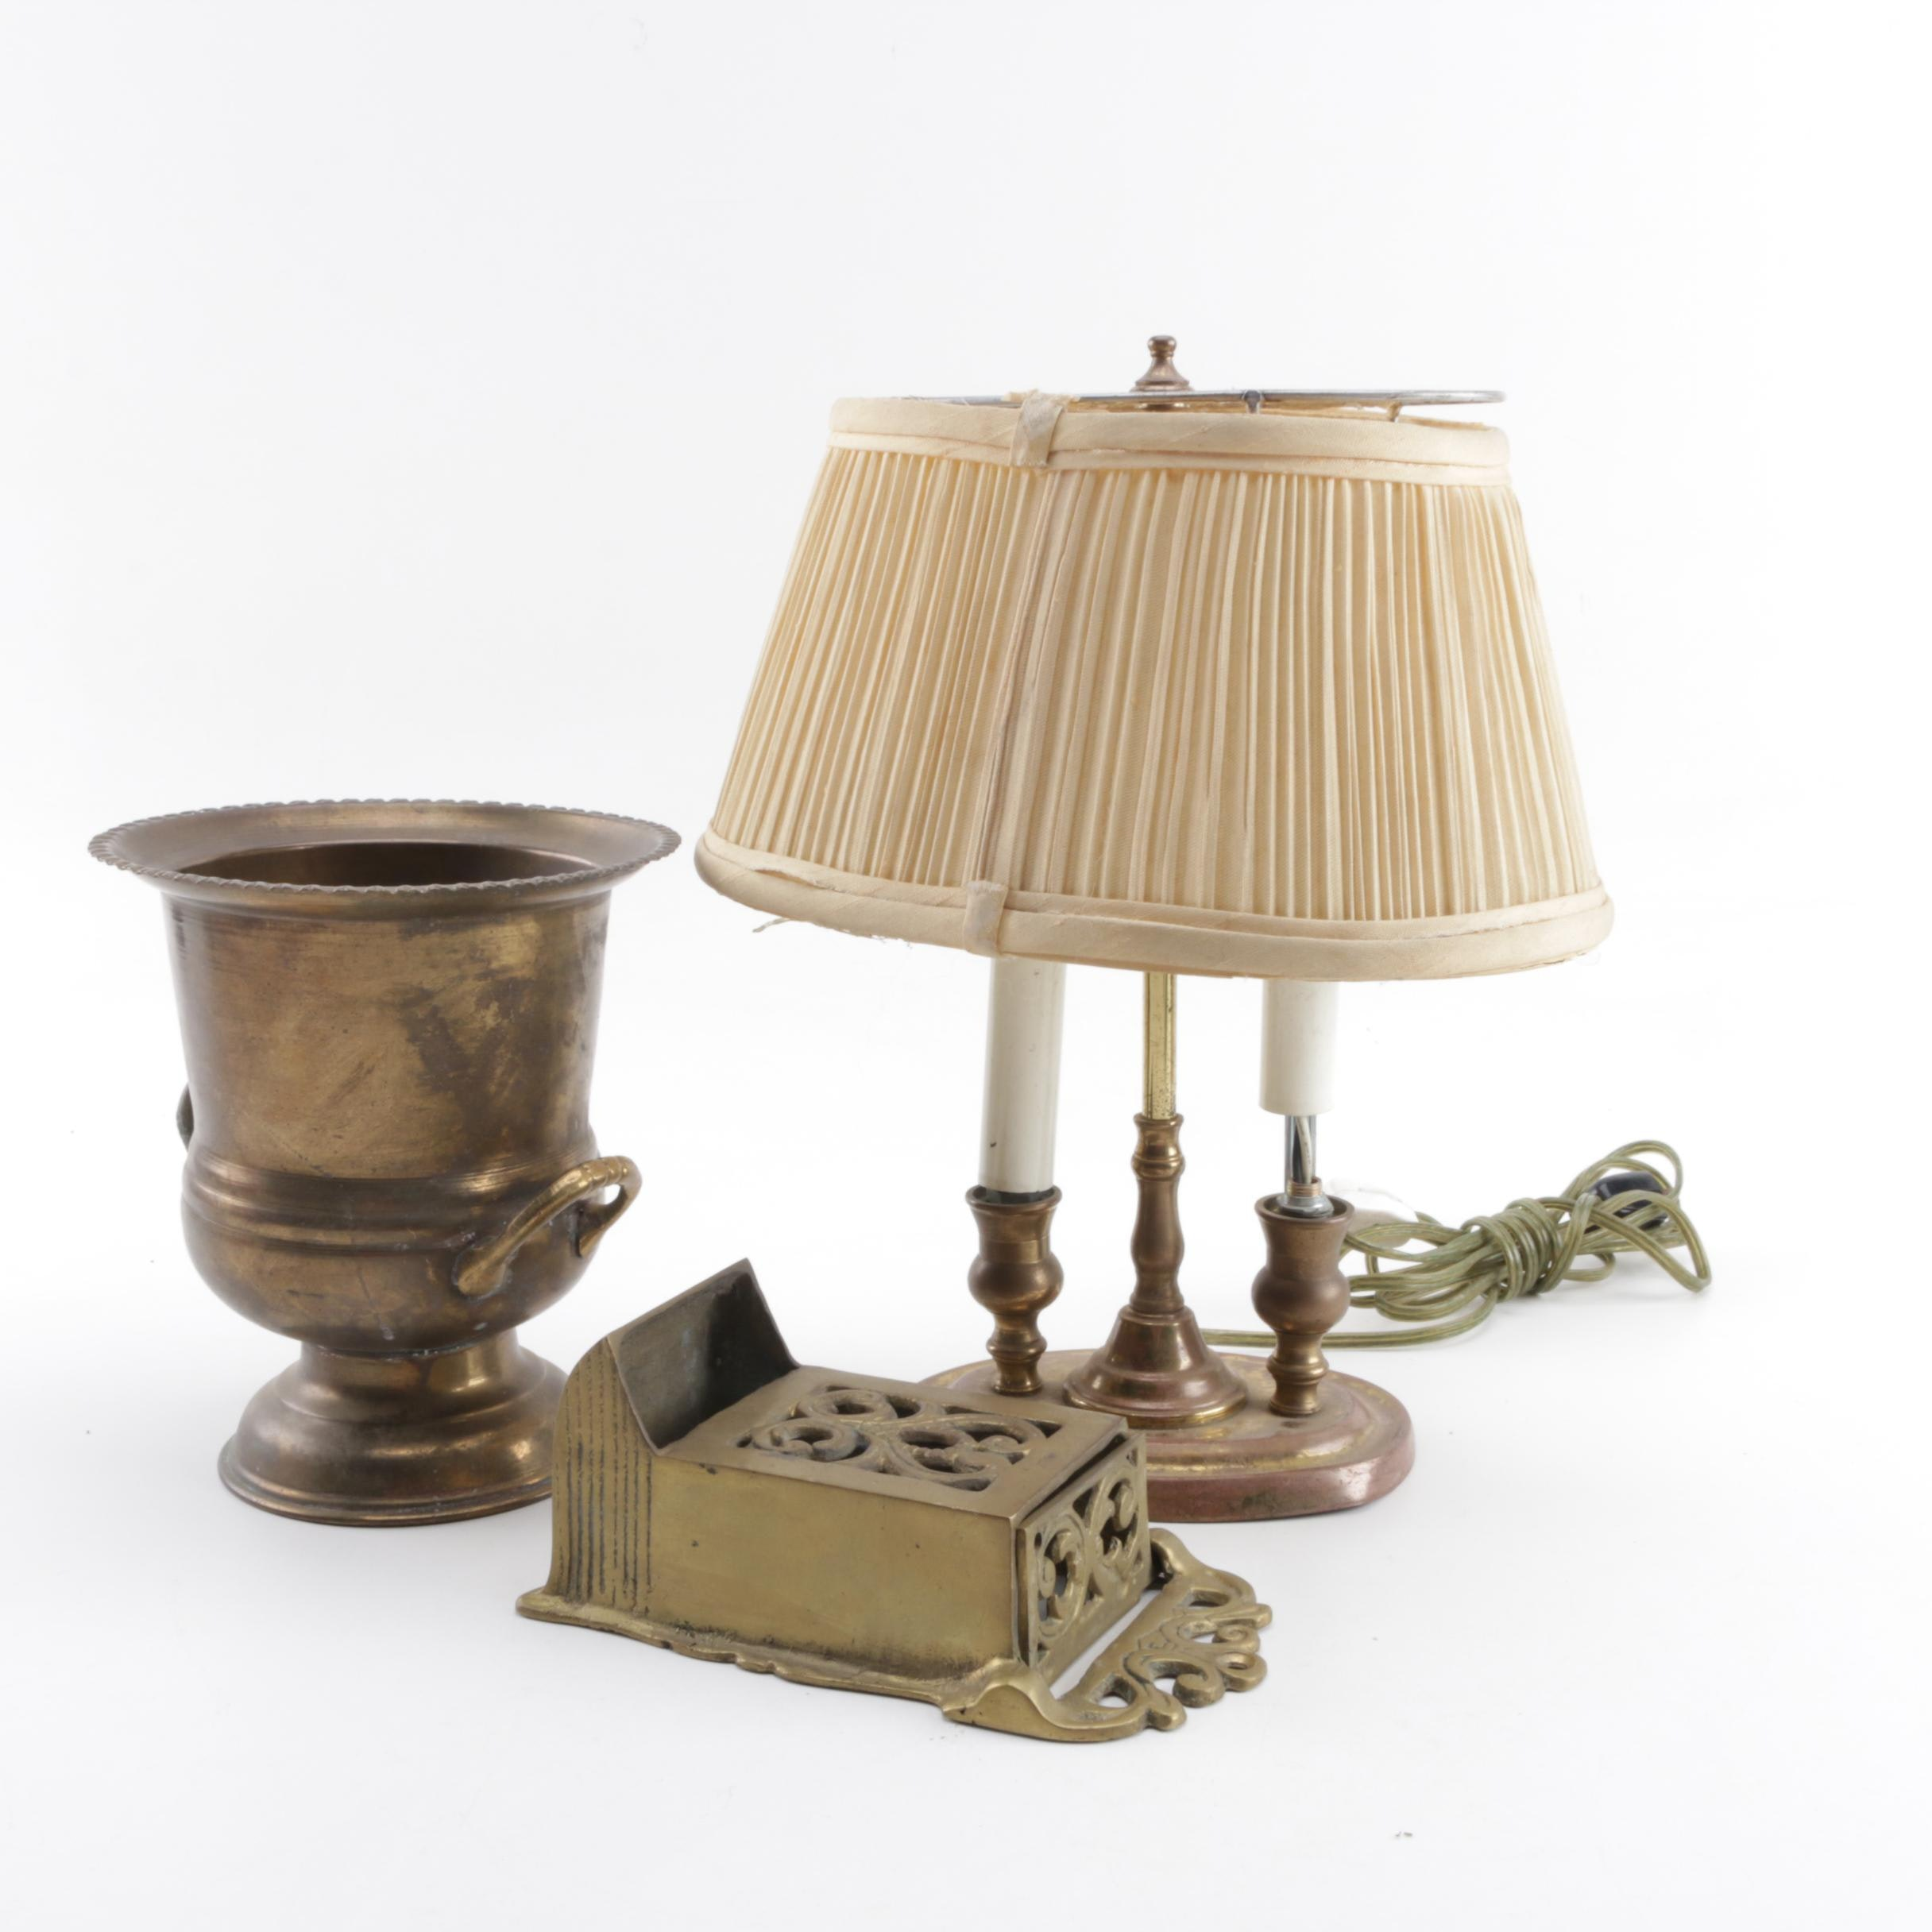 Gold Tone Lamp, Brass Vessel and Brass Decor